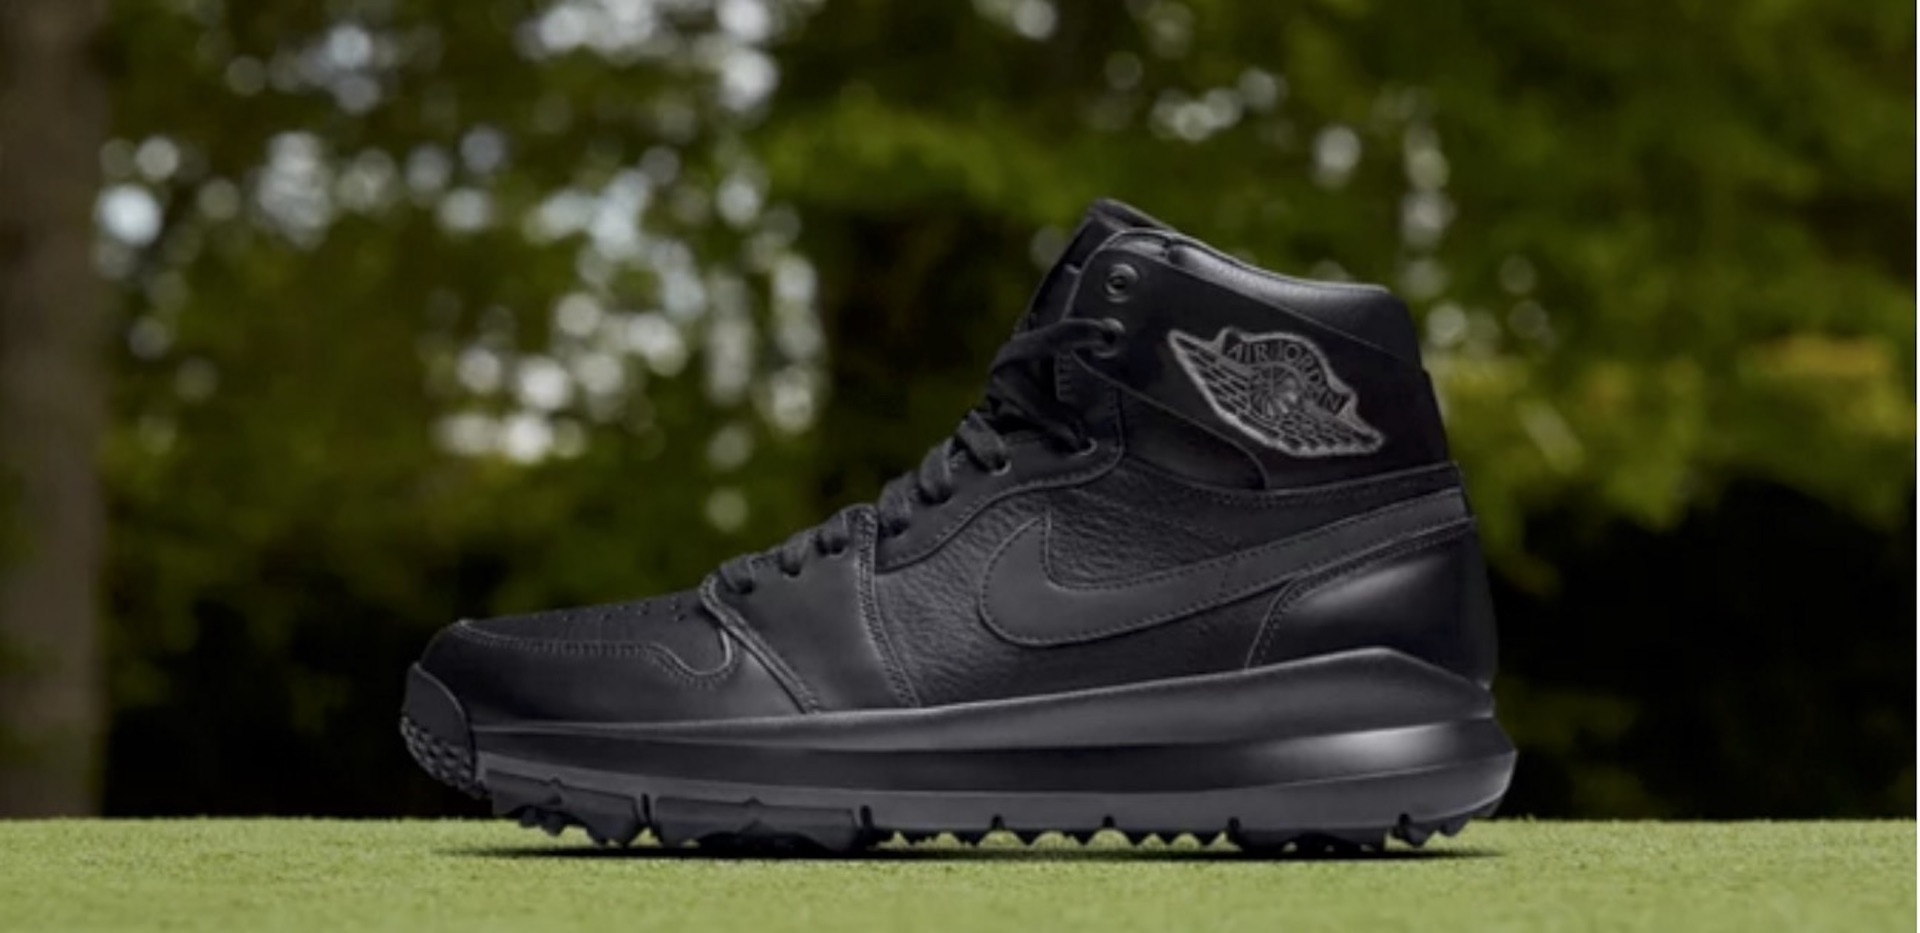 821937d9bebd Nike release new all black Air Jordan golf shoe - GolfPunkHQ